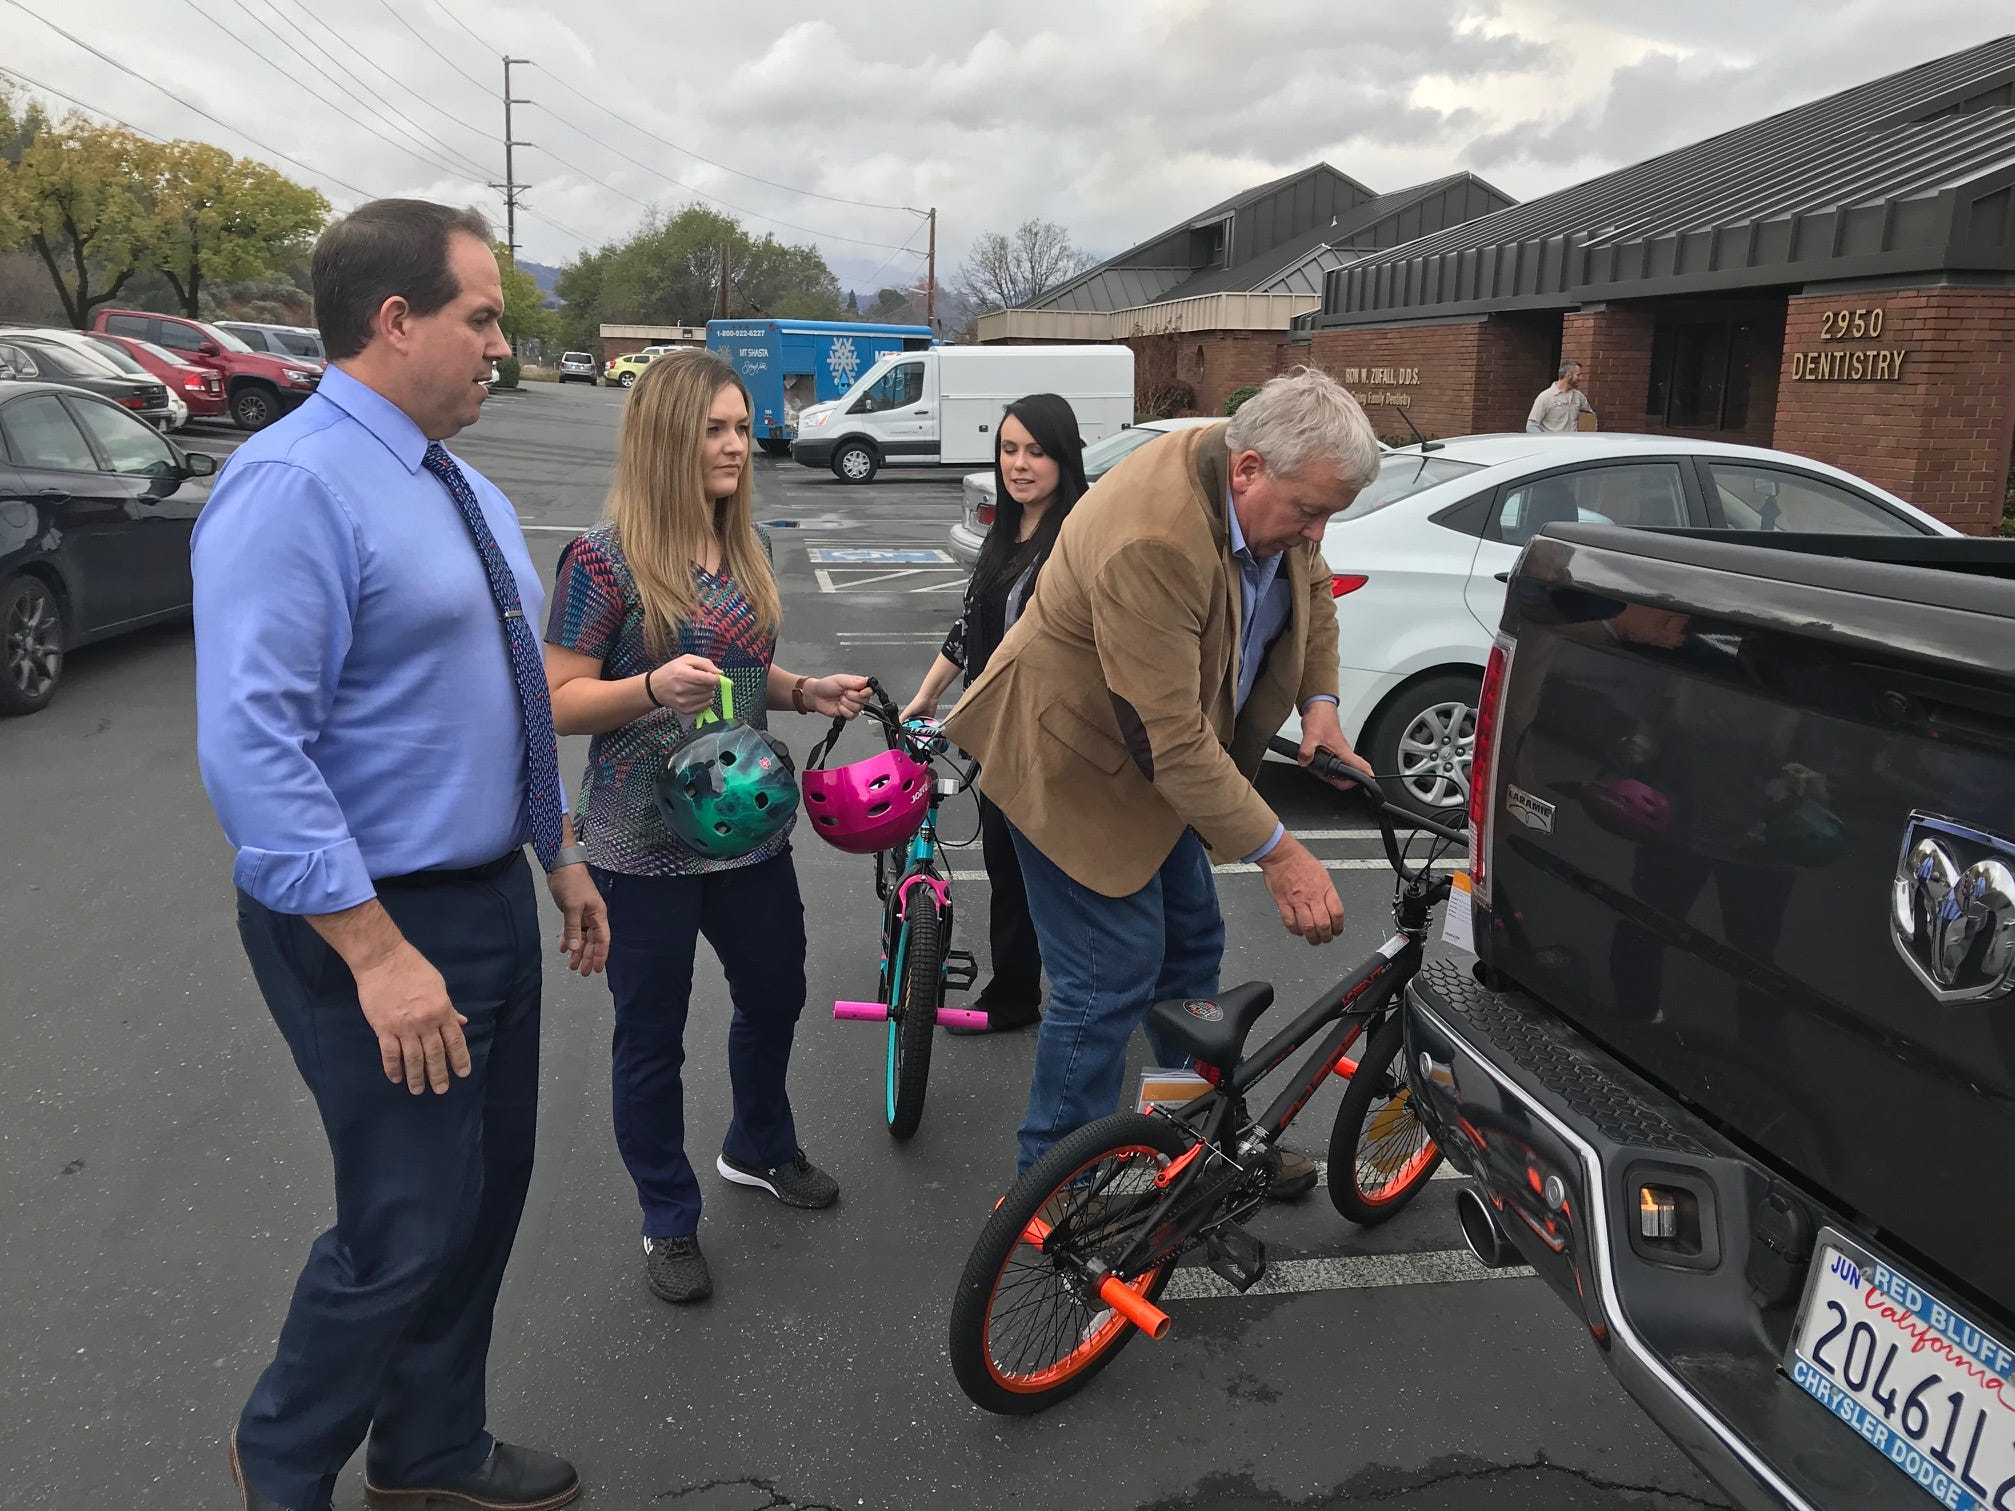 Ted Blankenheim picks up bicycles donated on Monday, Dec. 18, 2018 by Redding dentist Ron Zufall. Blankenheim will give the bikes away next week to foster children.